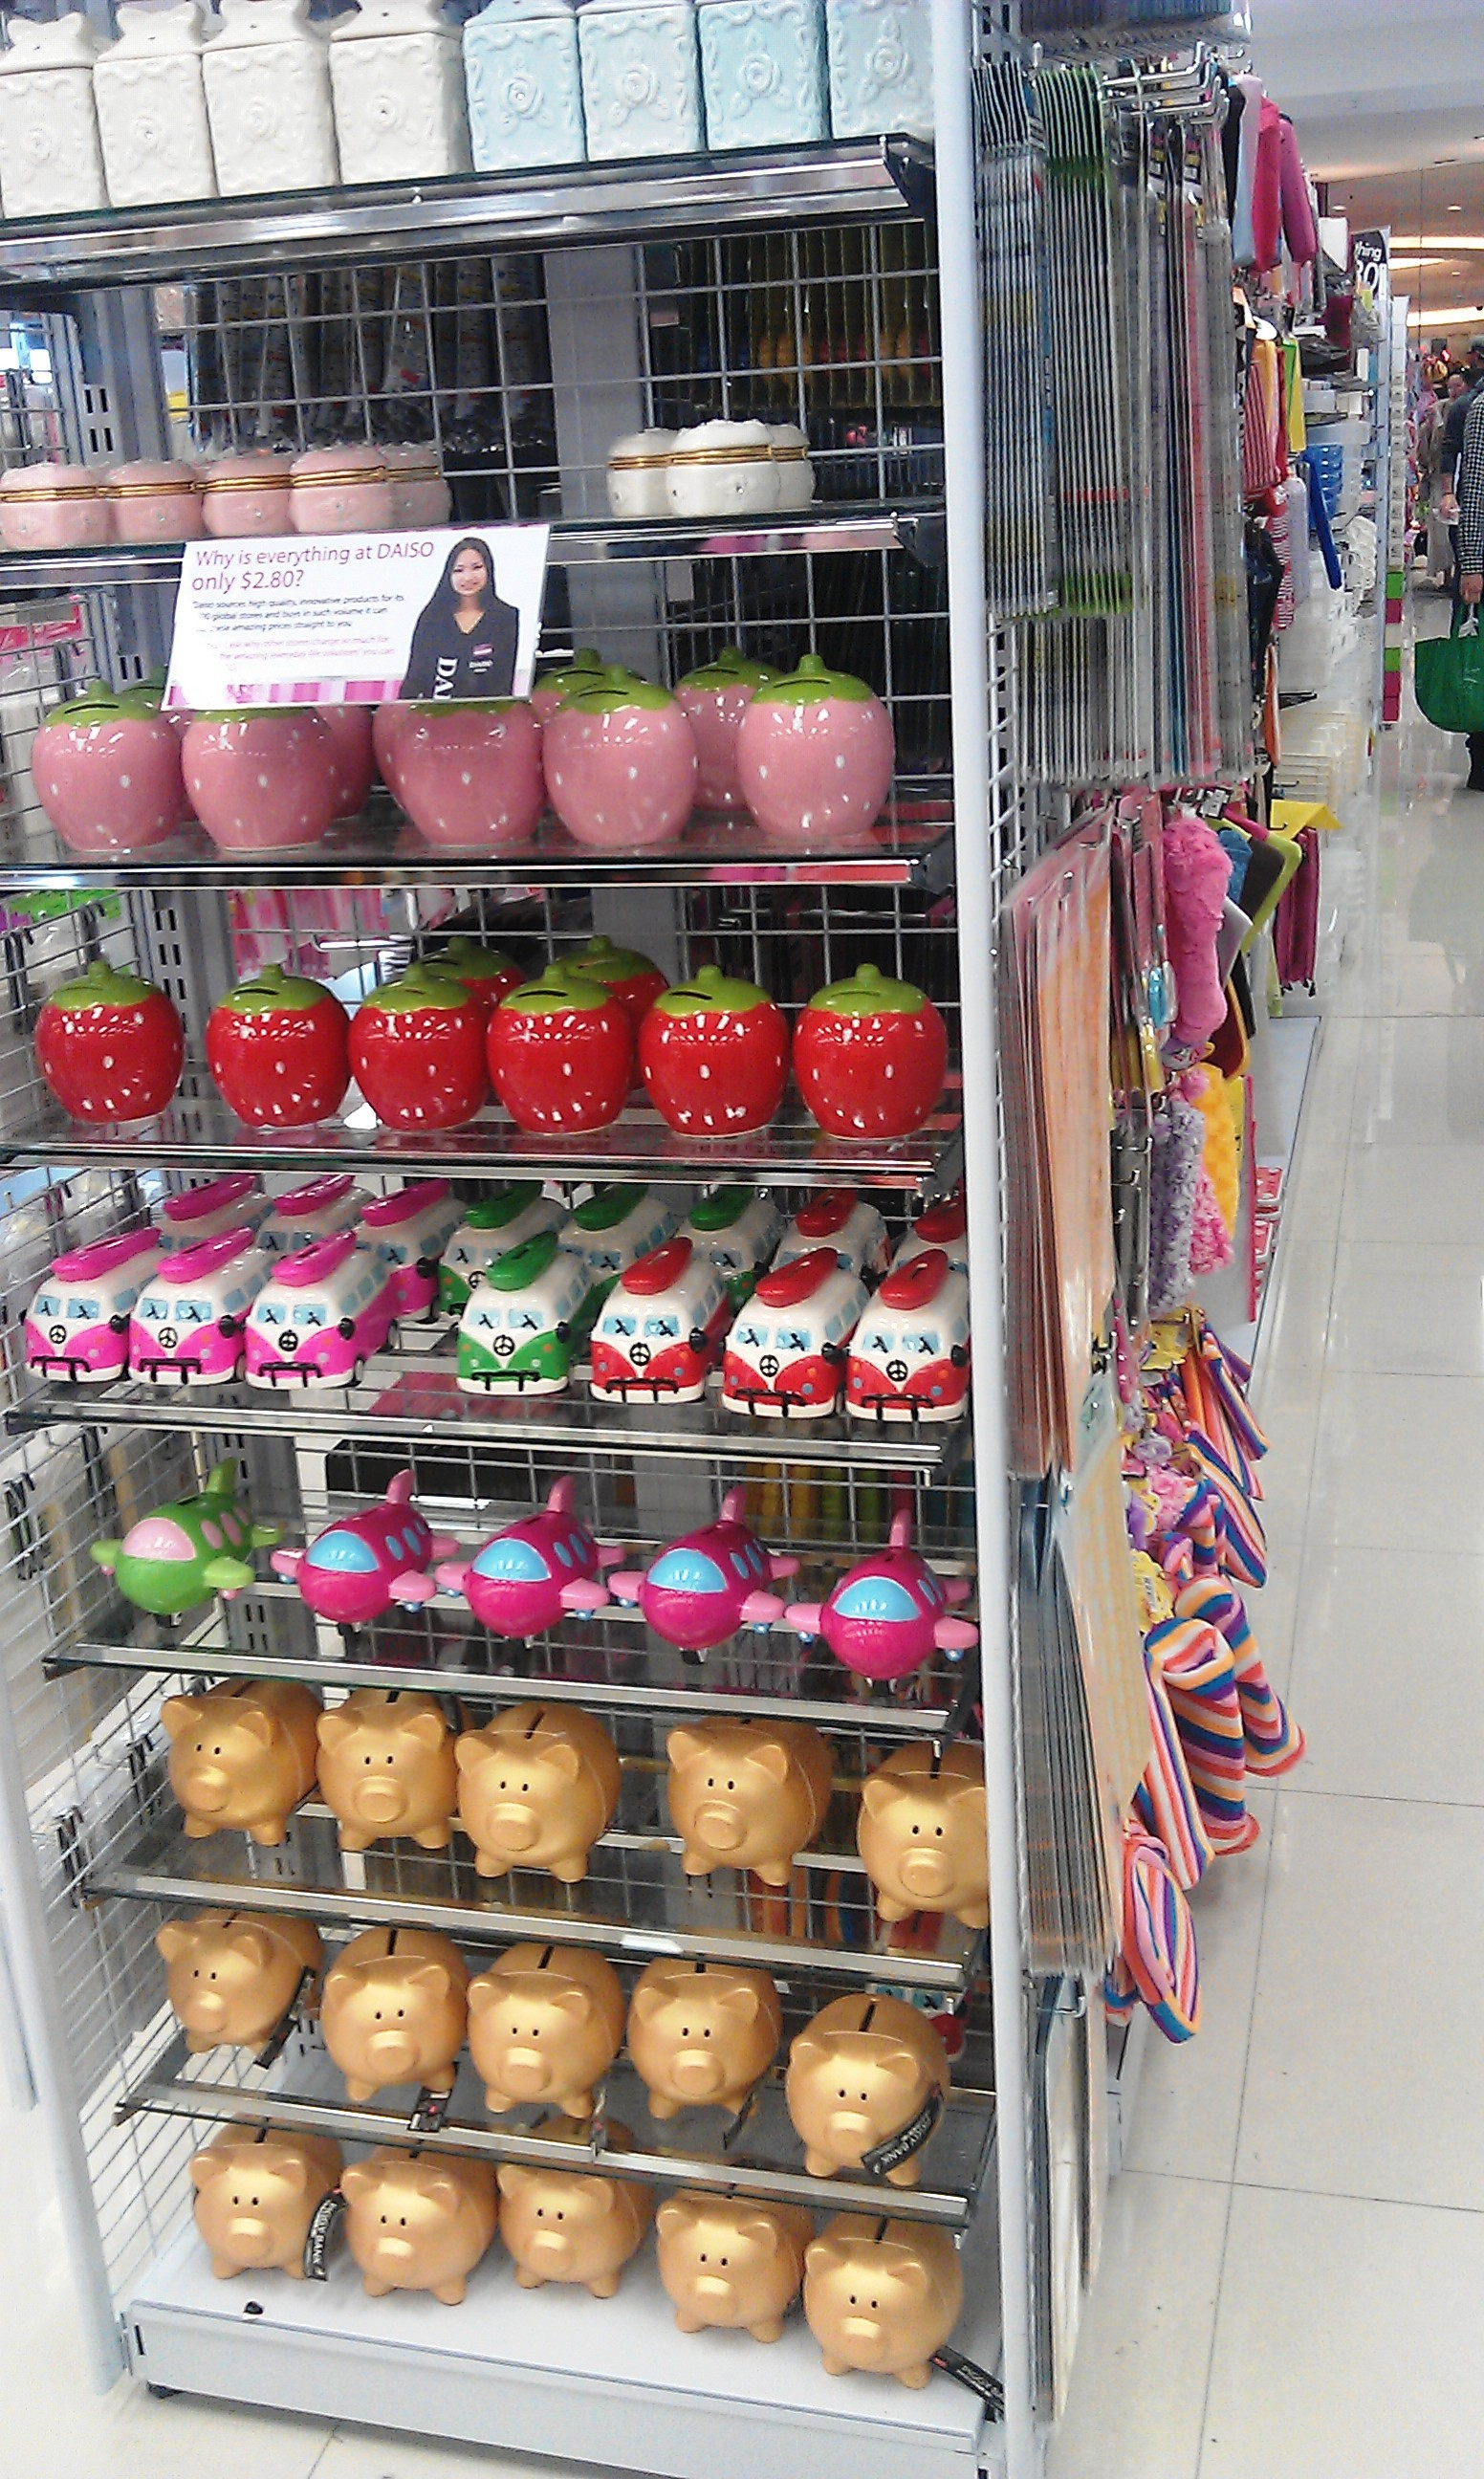 Daiso Japanese Discount Store Chadstone Shopping Centre